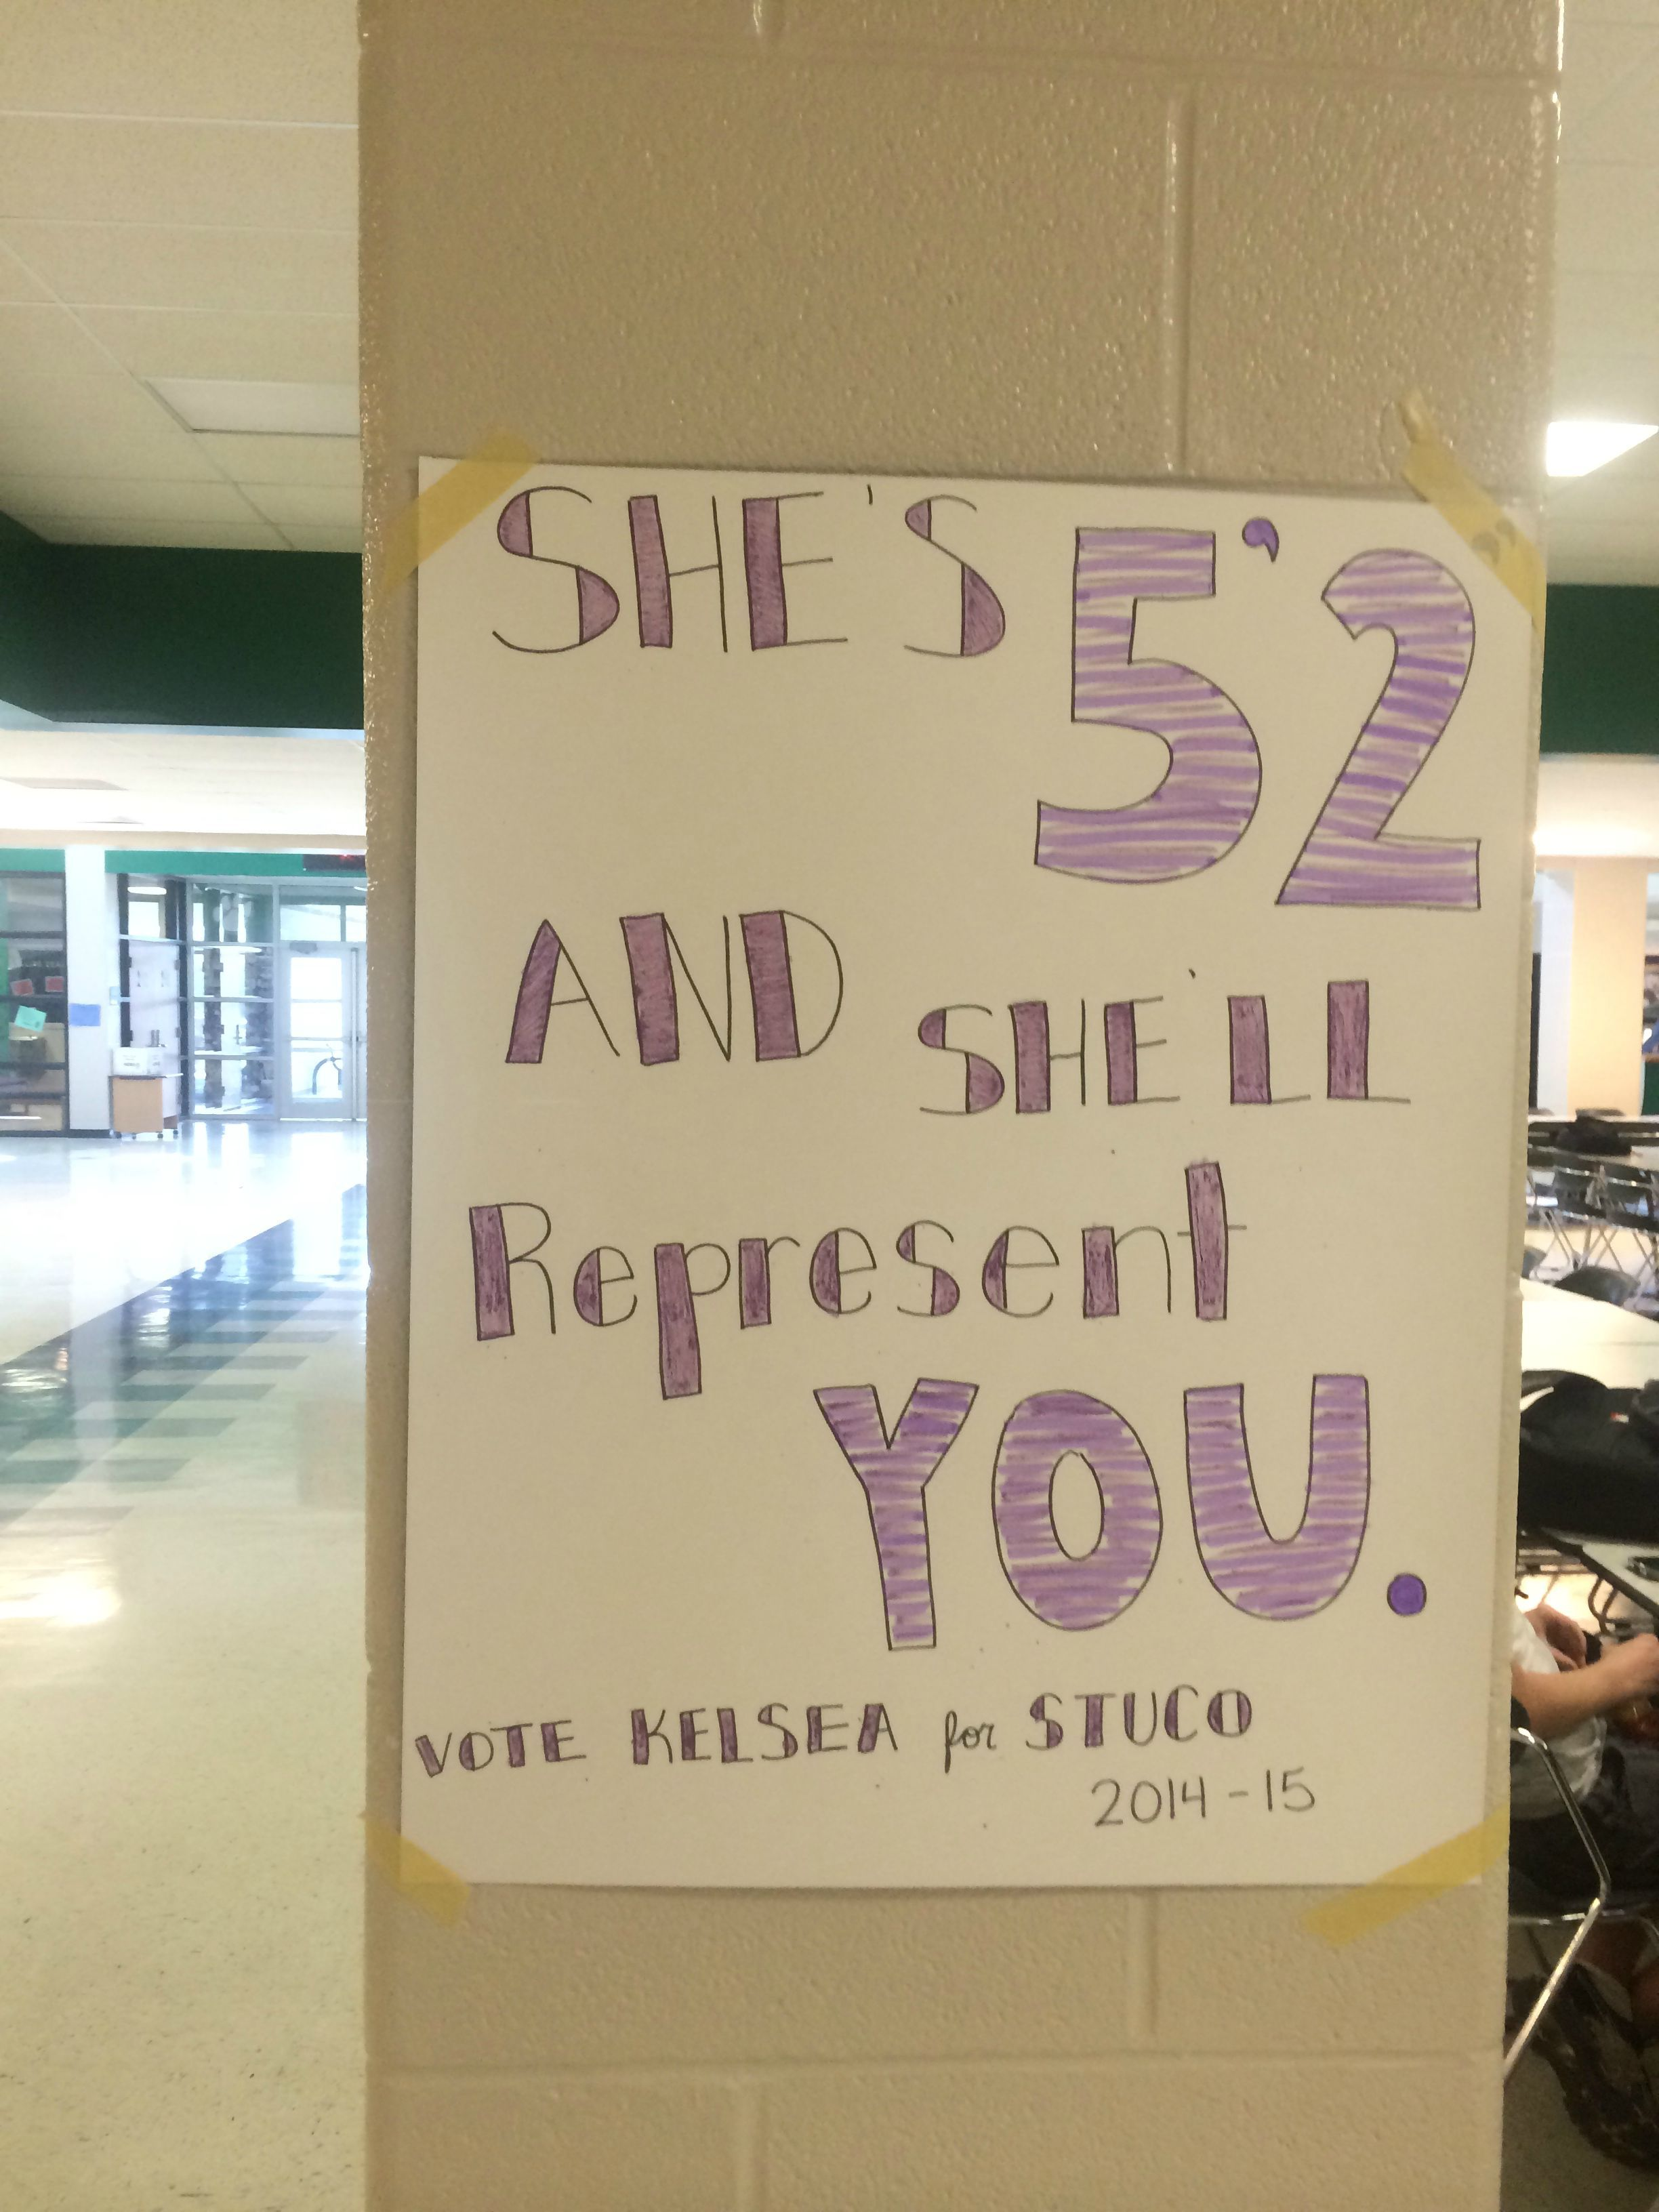 So my school is holding elections for student council ...